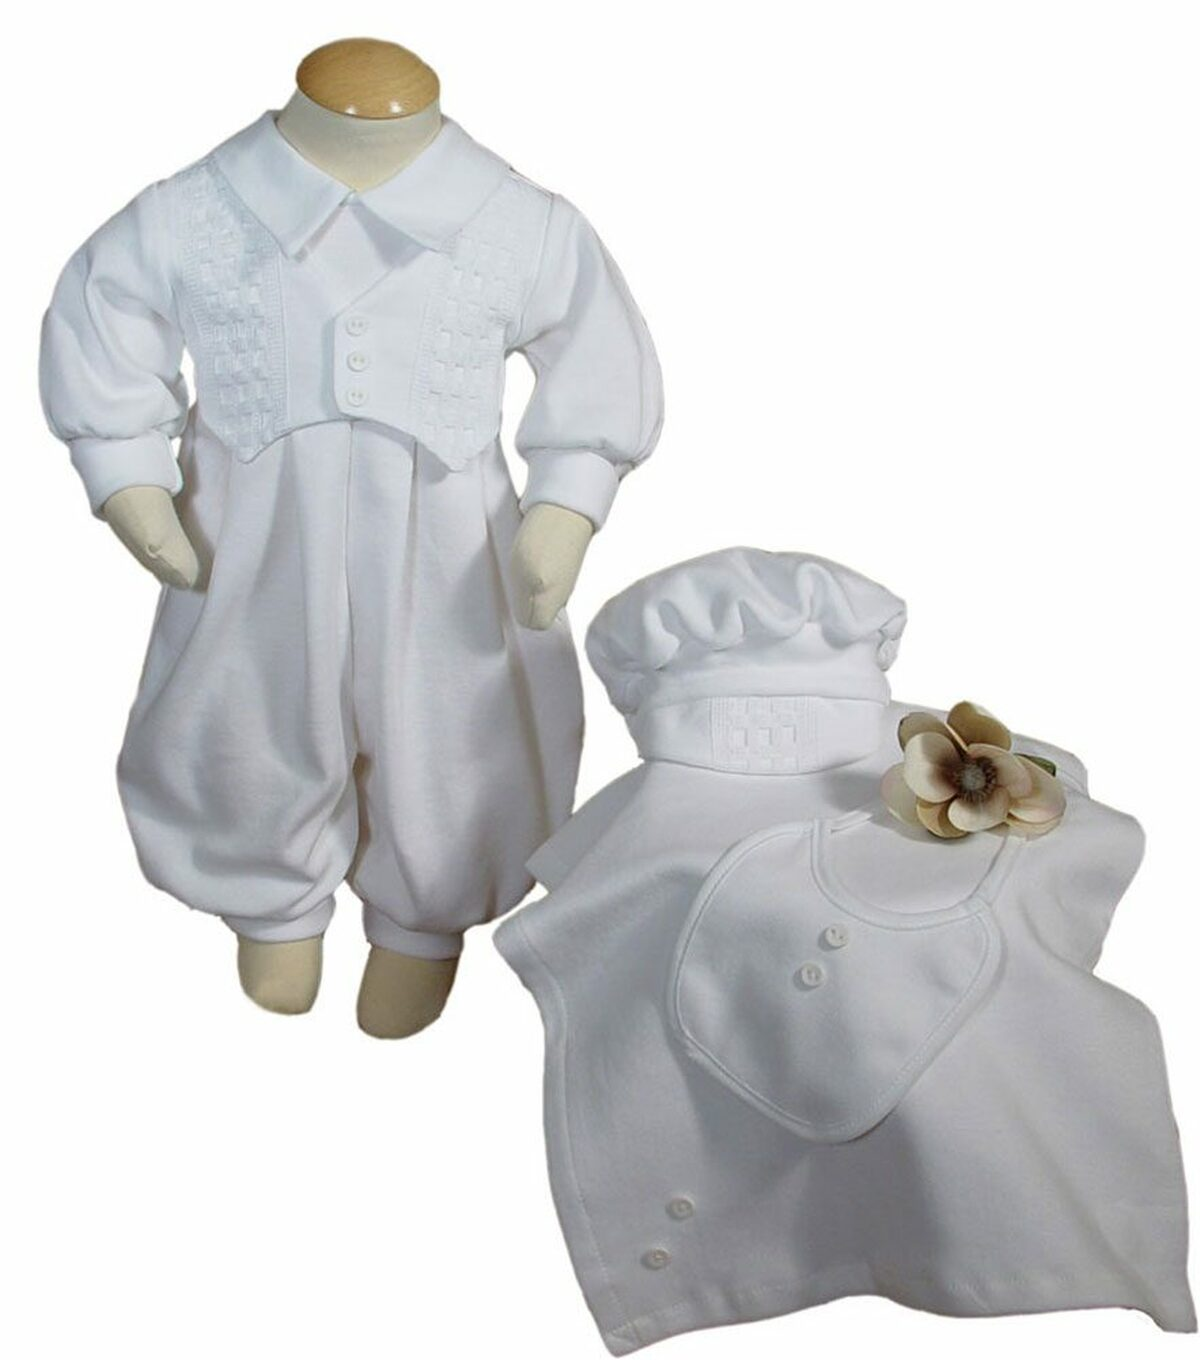 boys-white-long-sleeve-cotton-interlock-preemie-christening-burial-4-piece-set-12892.1535127303.jpg